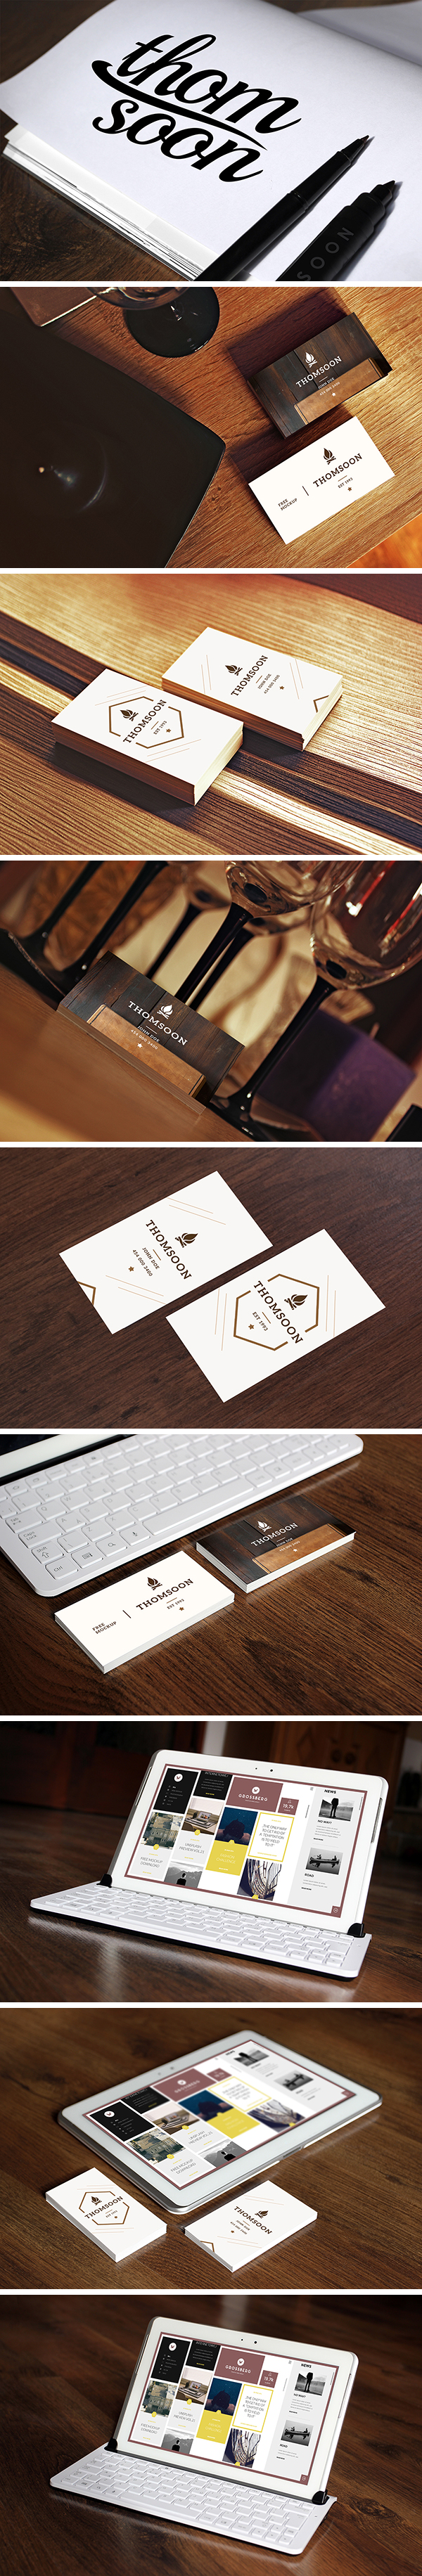 9-business-card-and-tablet-mockup600